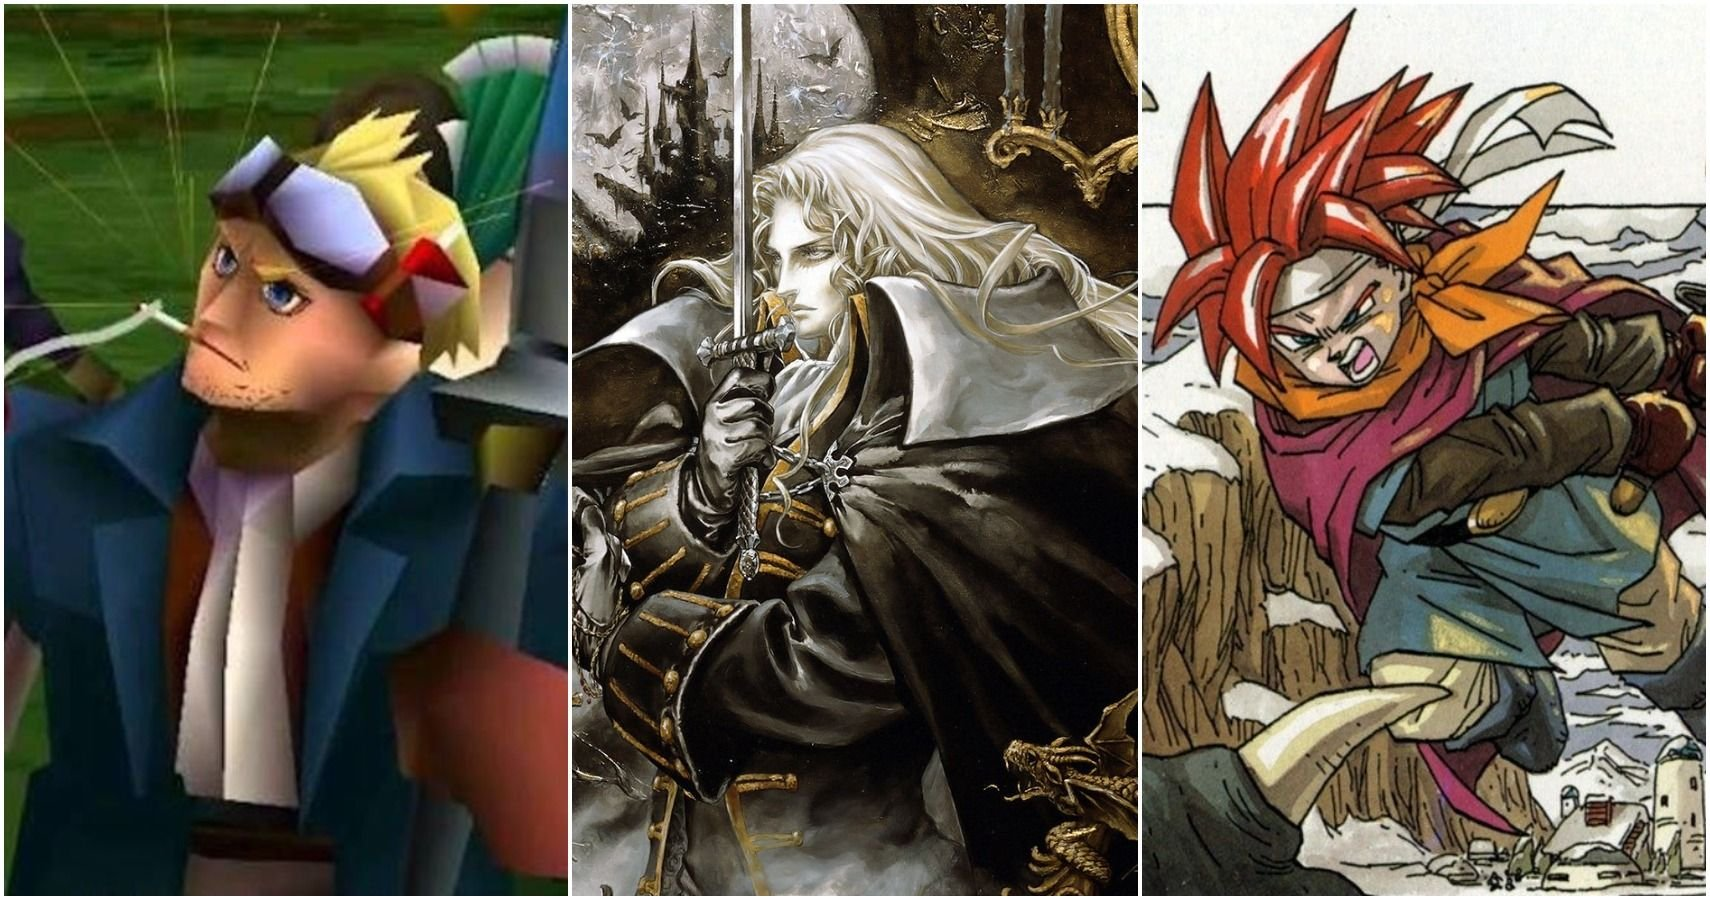 10 Best JRPGs Of The 90s (According To Metacritic)